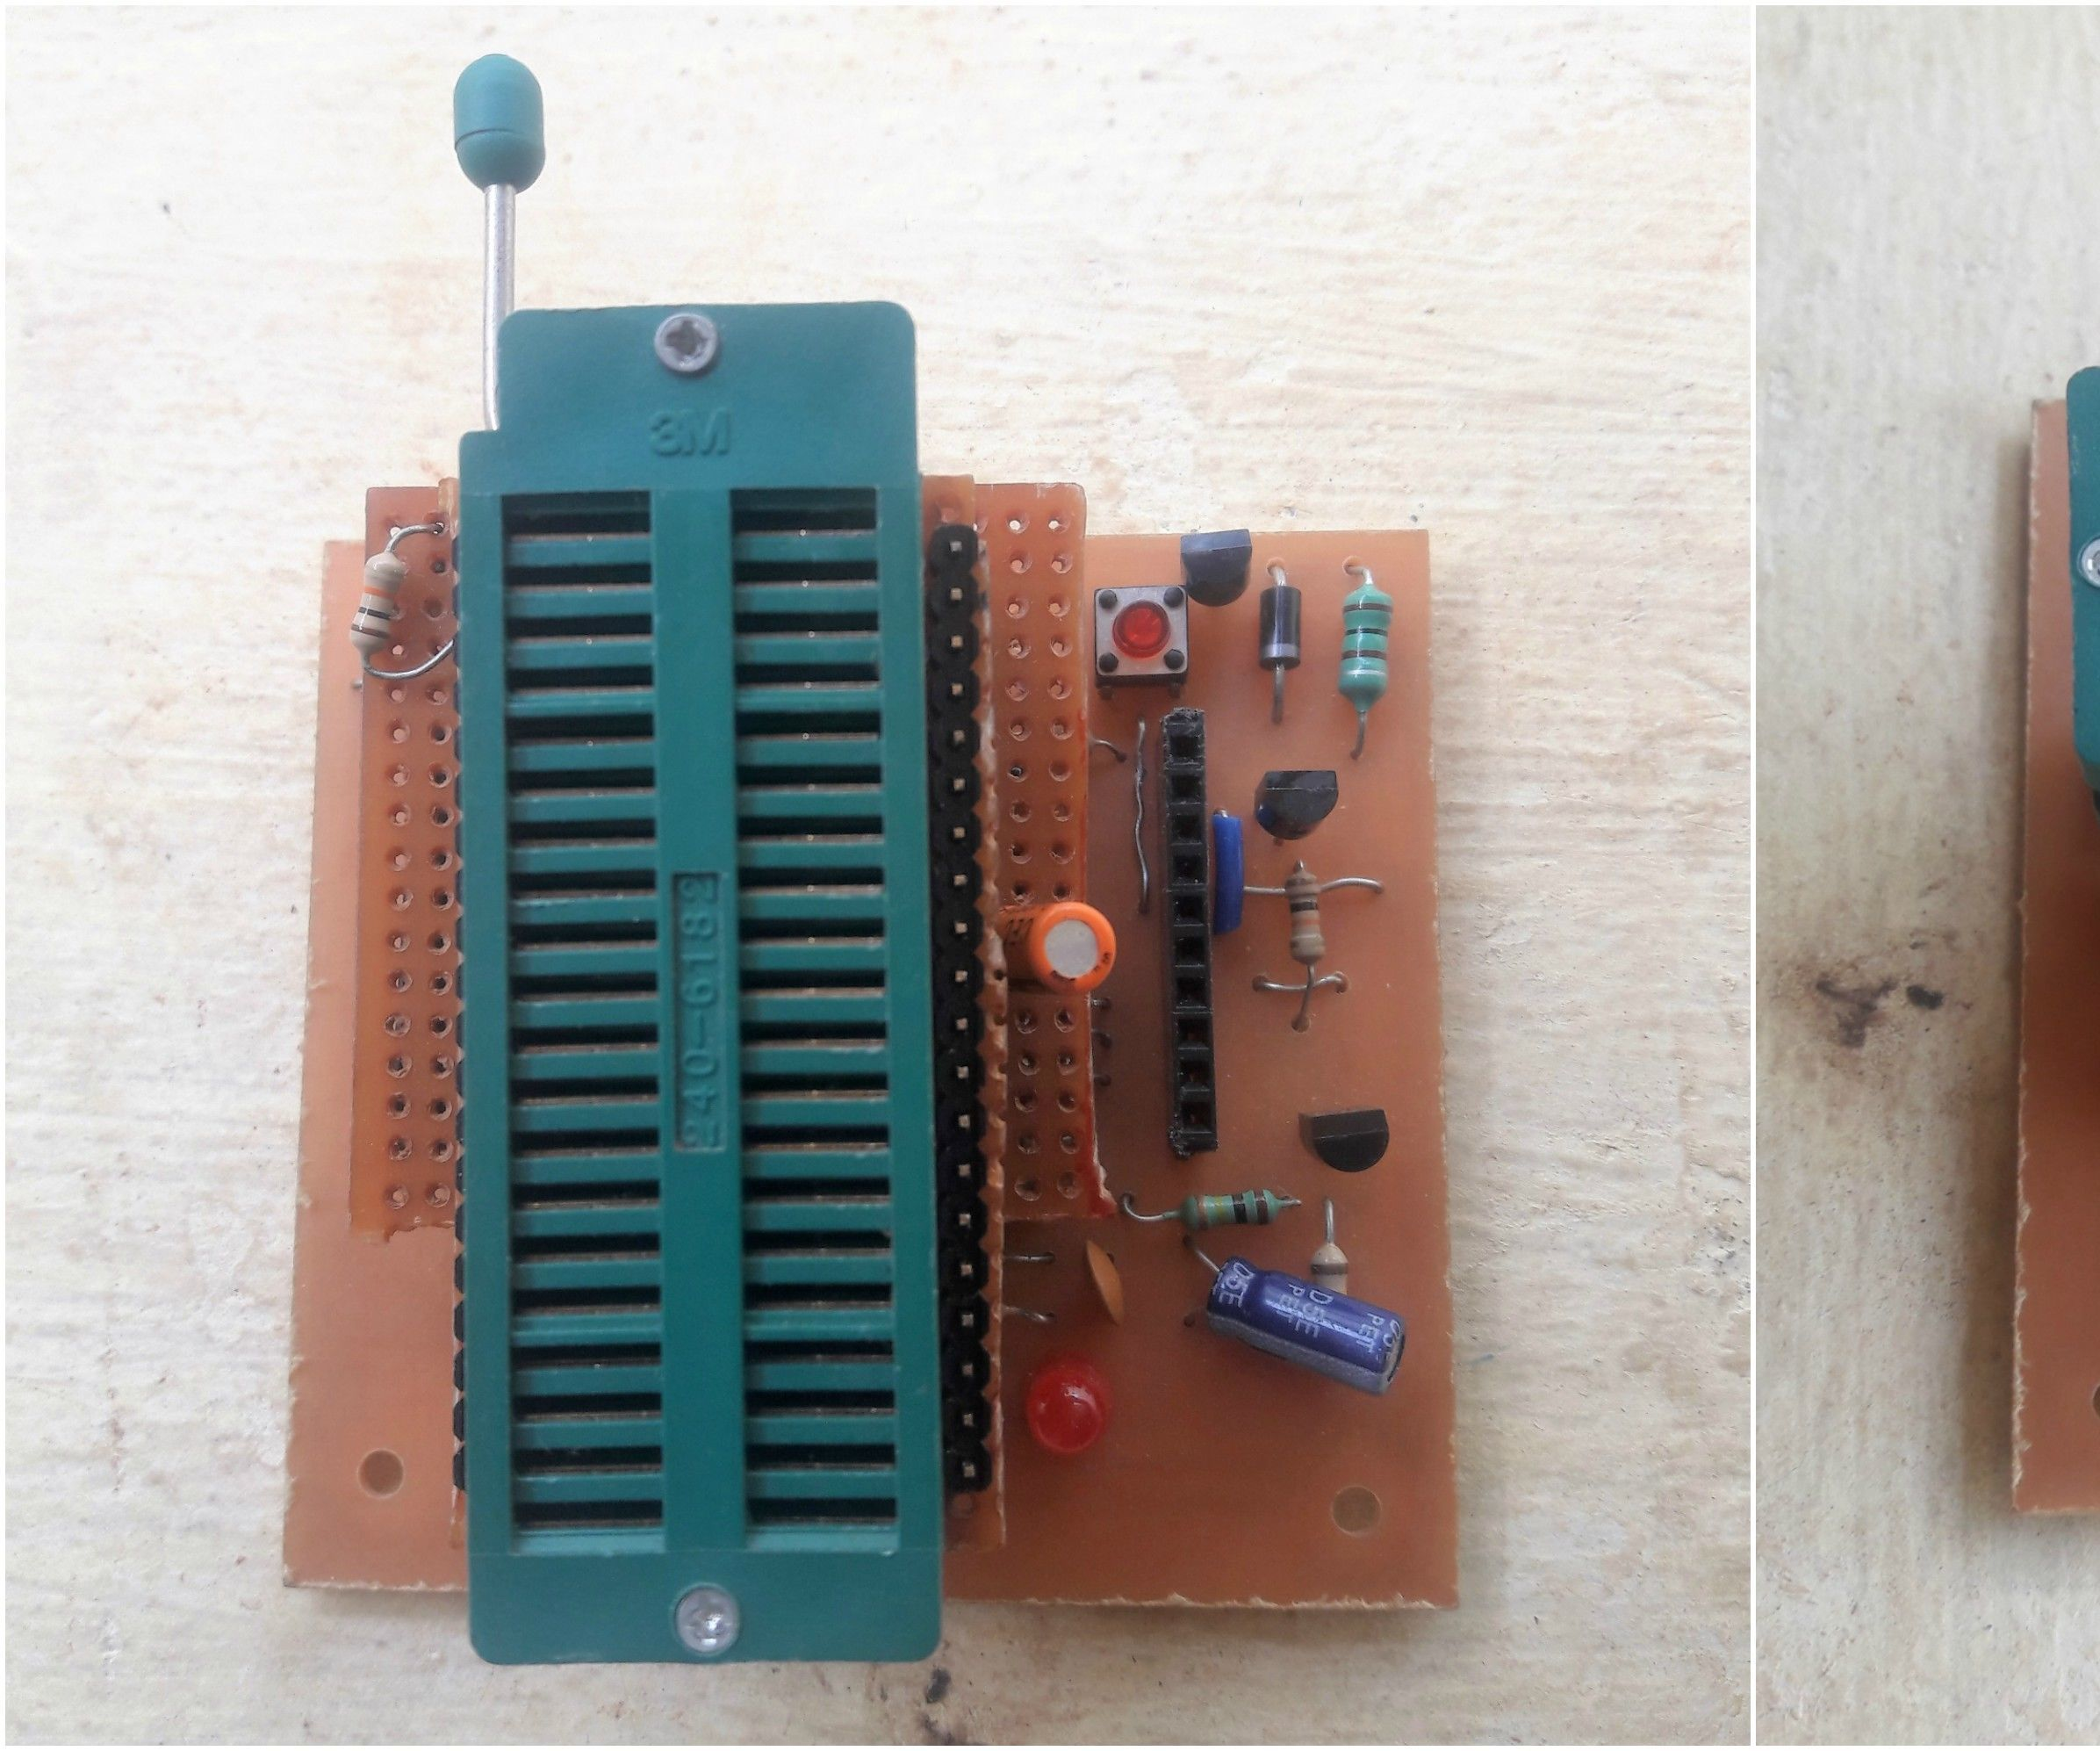 DIY- UNIVERSAL PIC AND AVR PROGRAMMER